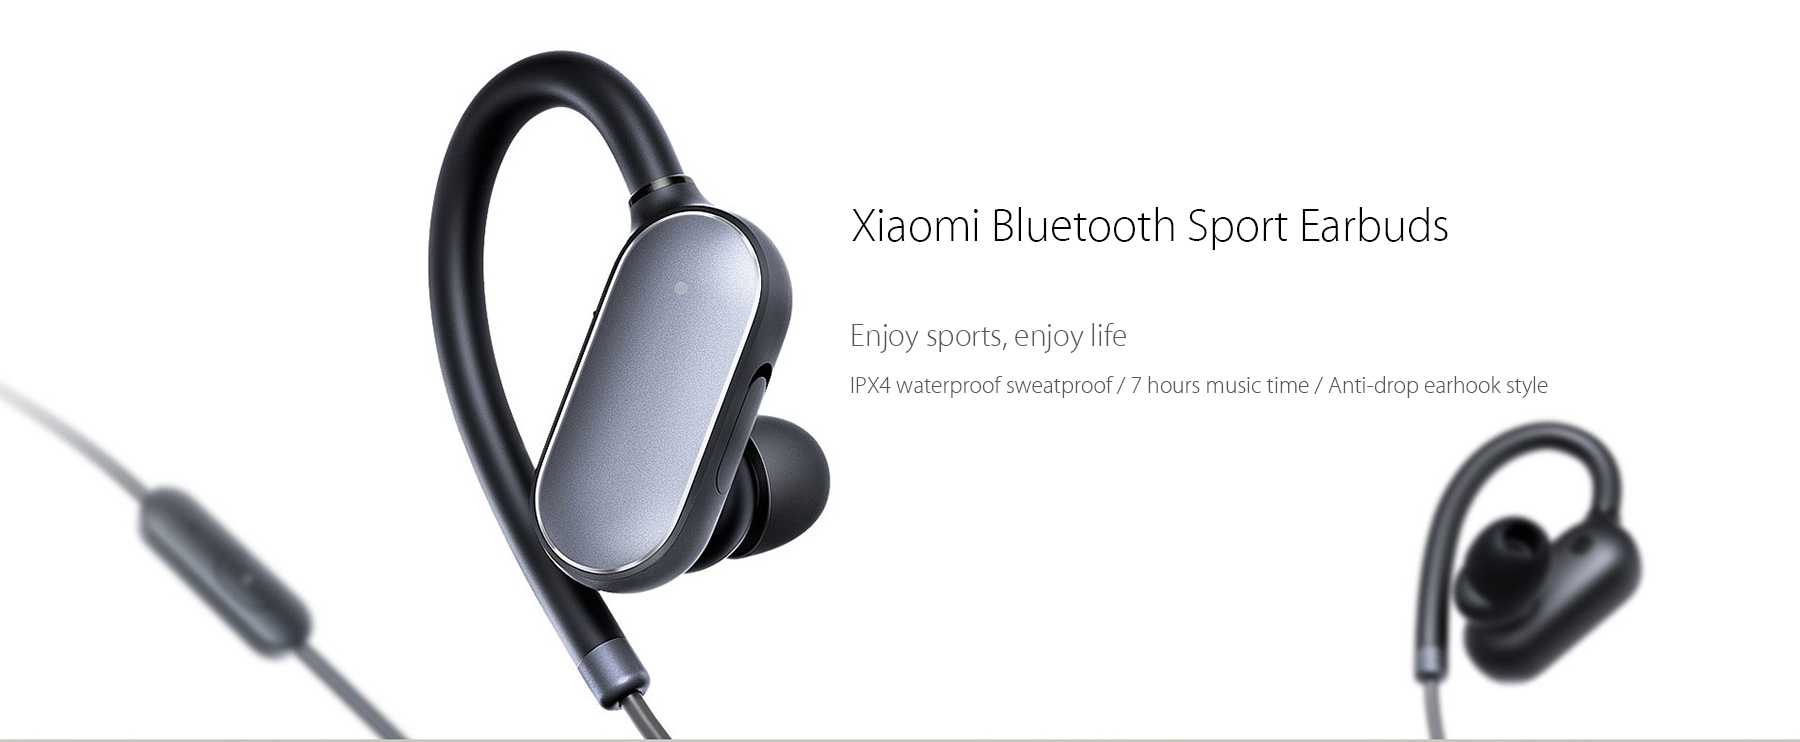 Xiaomi Auricolari Wireless Bluetooth 4.1 Musica auricolari in-ear sport